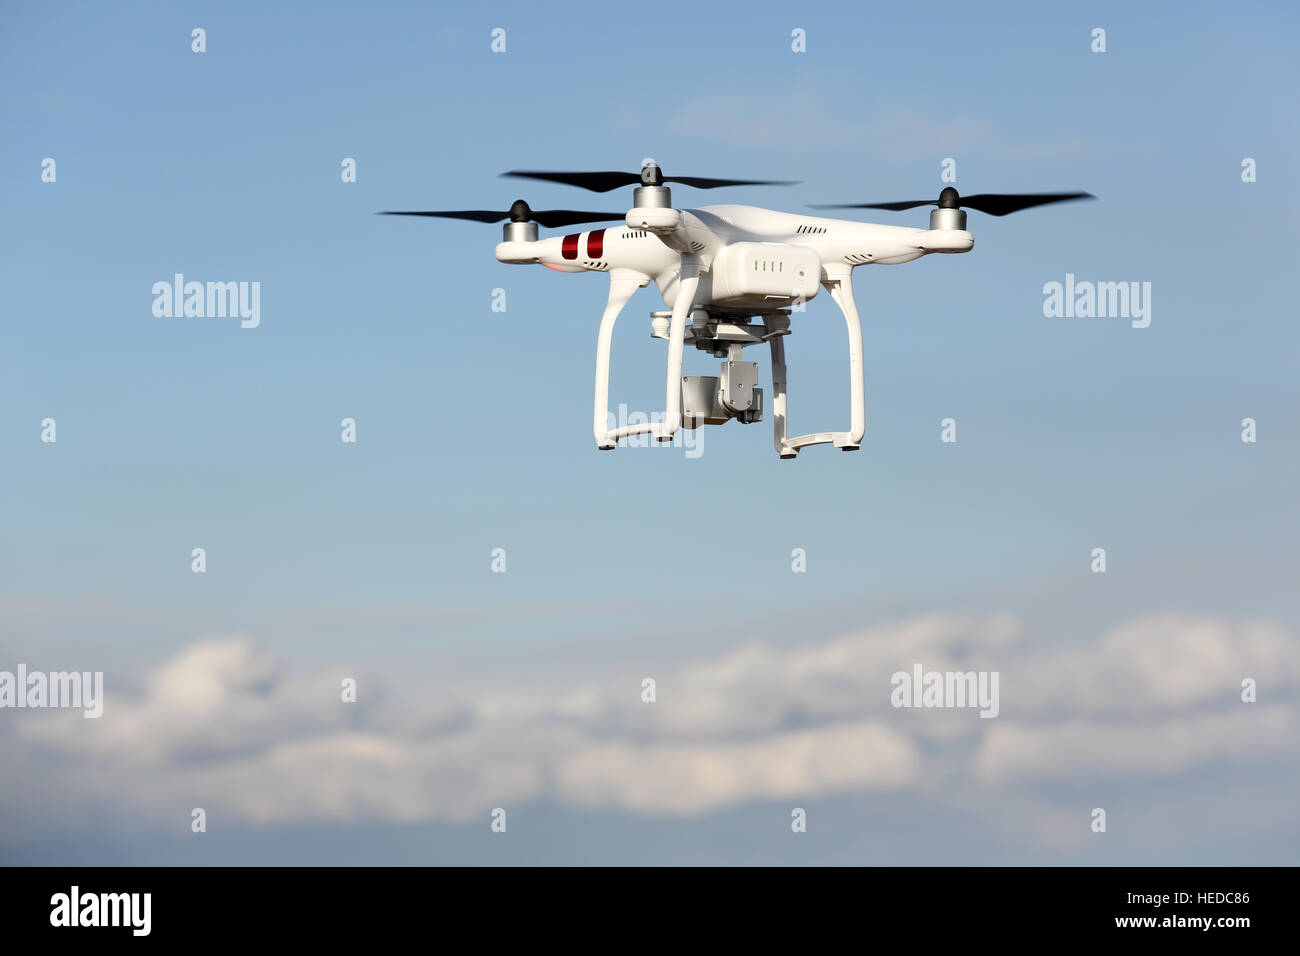 White Remote Controlled Drone Dji Phantom 3 Equipped With High Resolution Video Camera Hovering In Air And Blue Sky